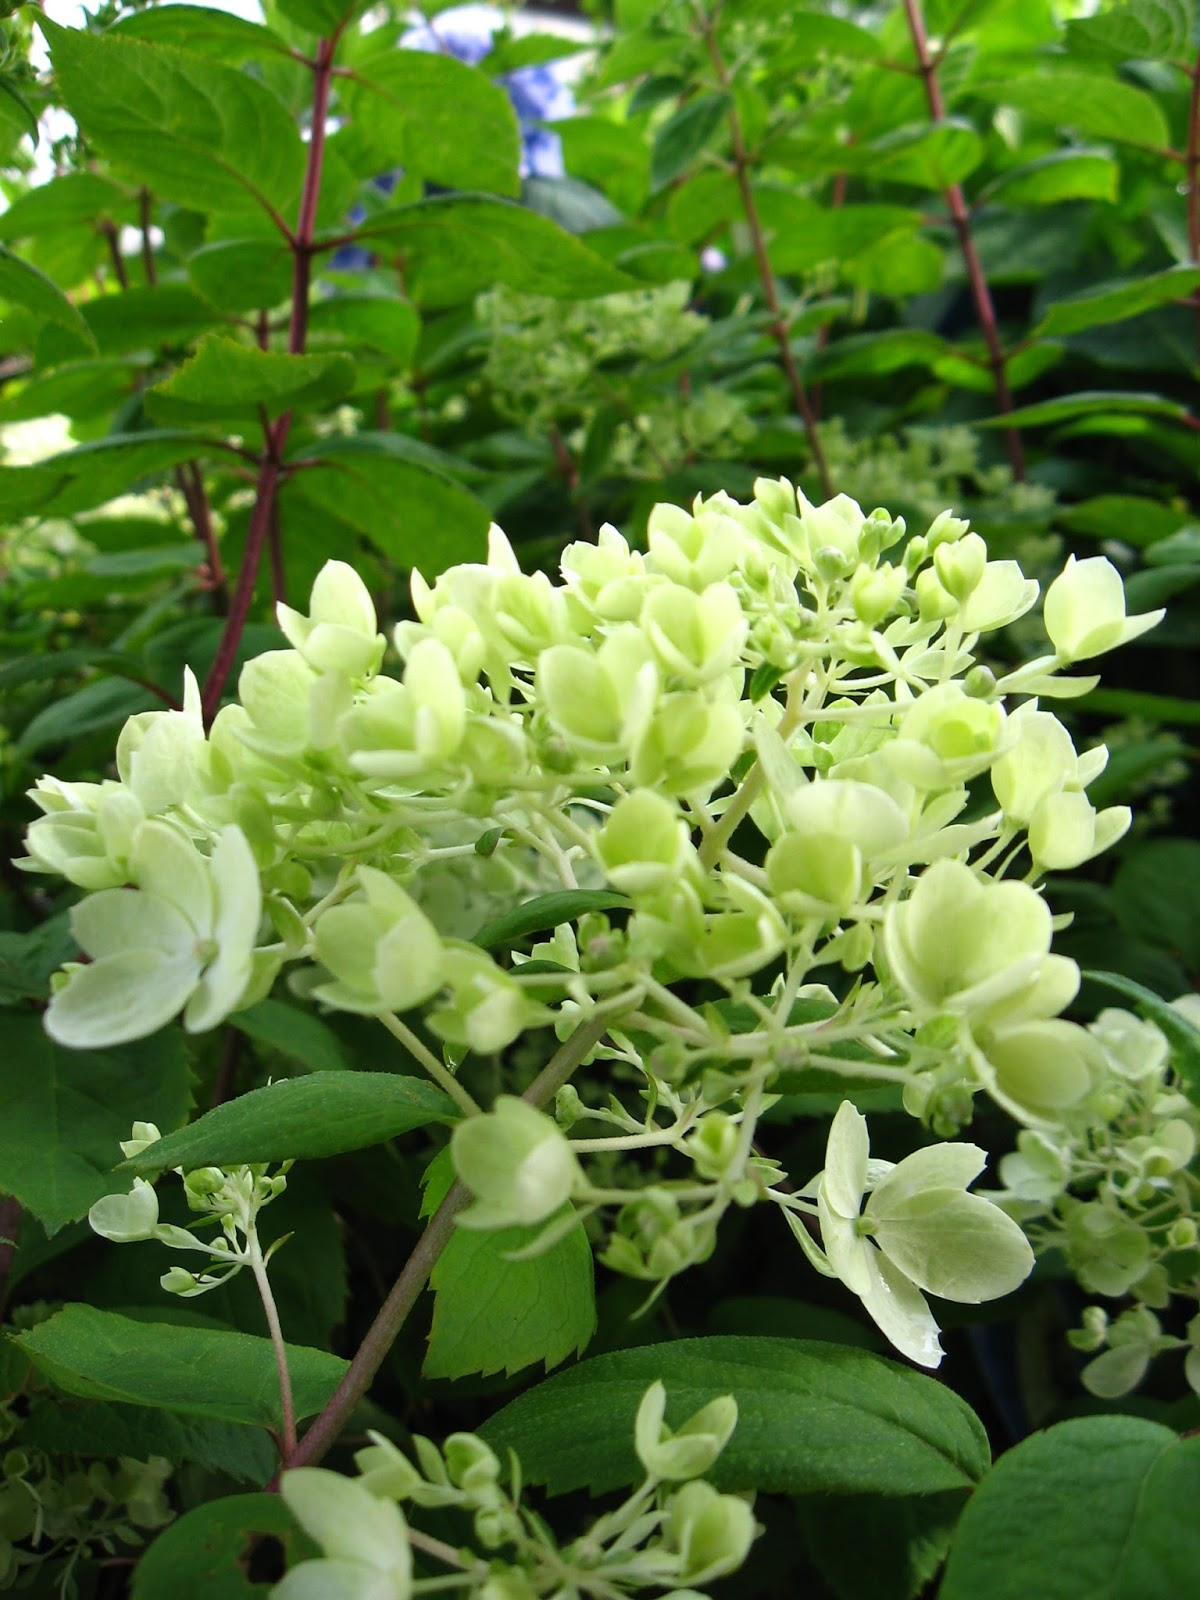 Hydrangea Flower Color Vander Giessen Nursery: Hydrangeas: When To Prune And How